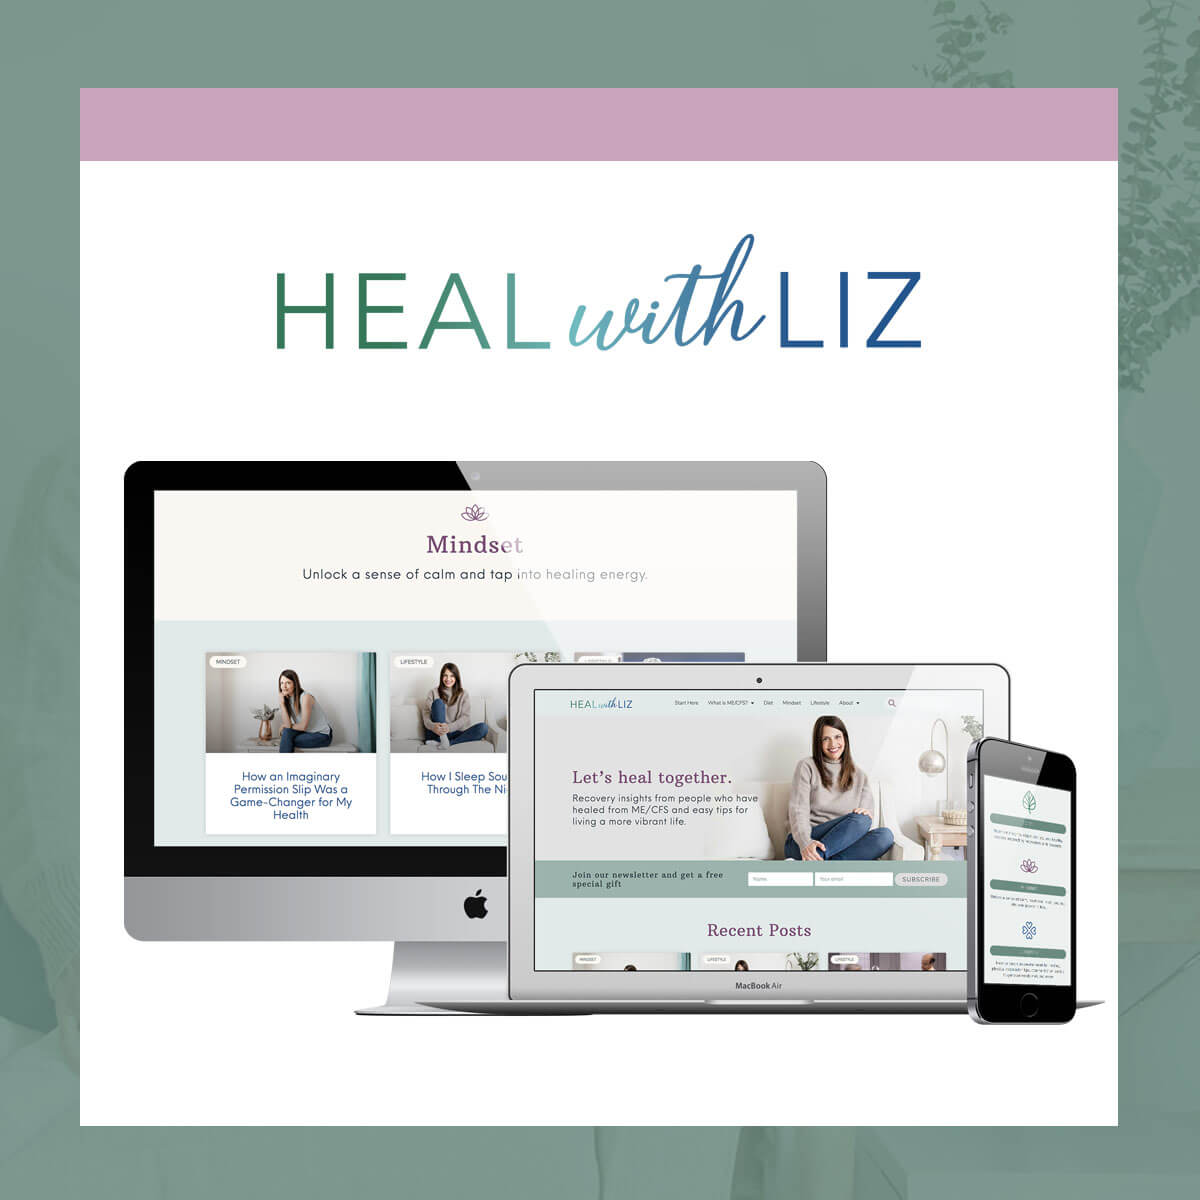 heal-with-liz-promo6